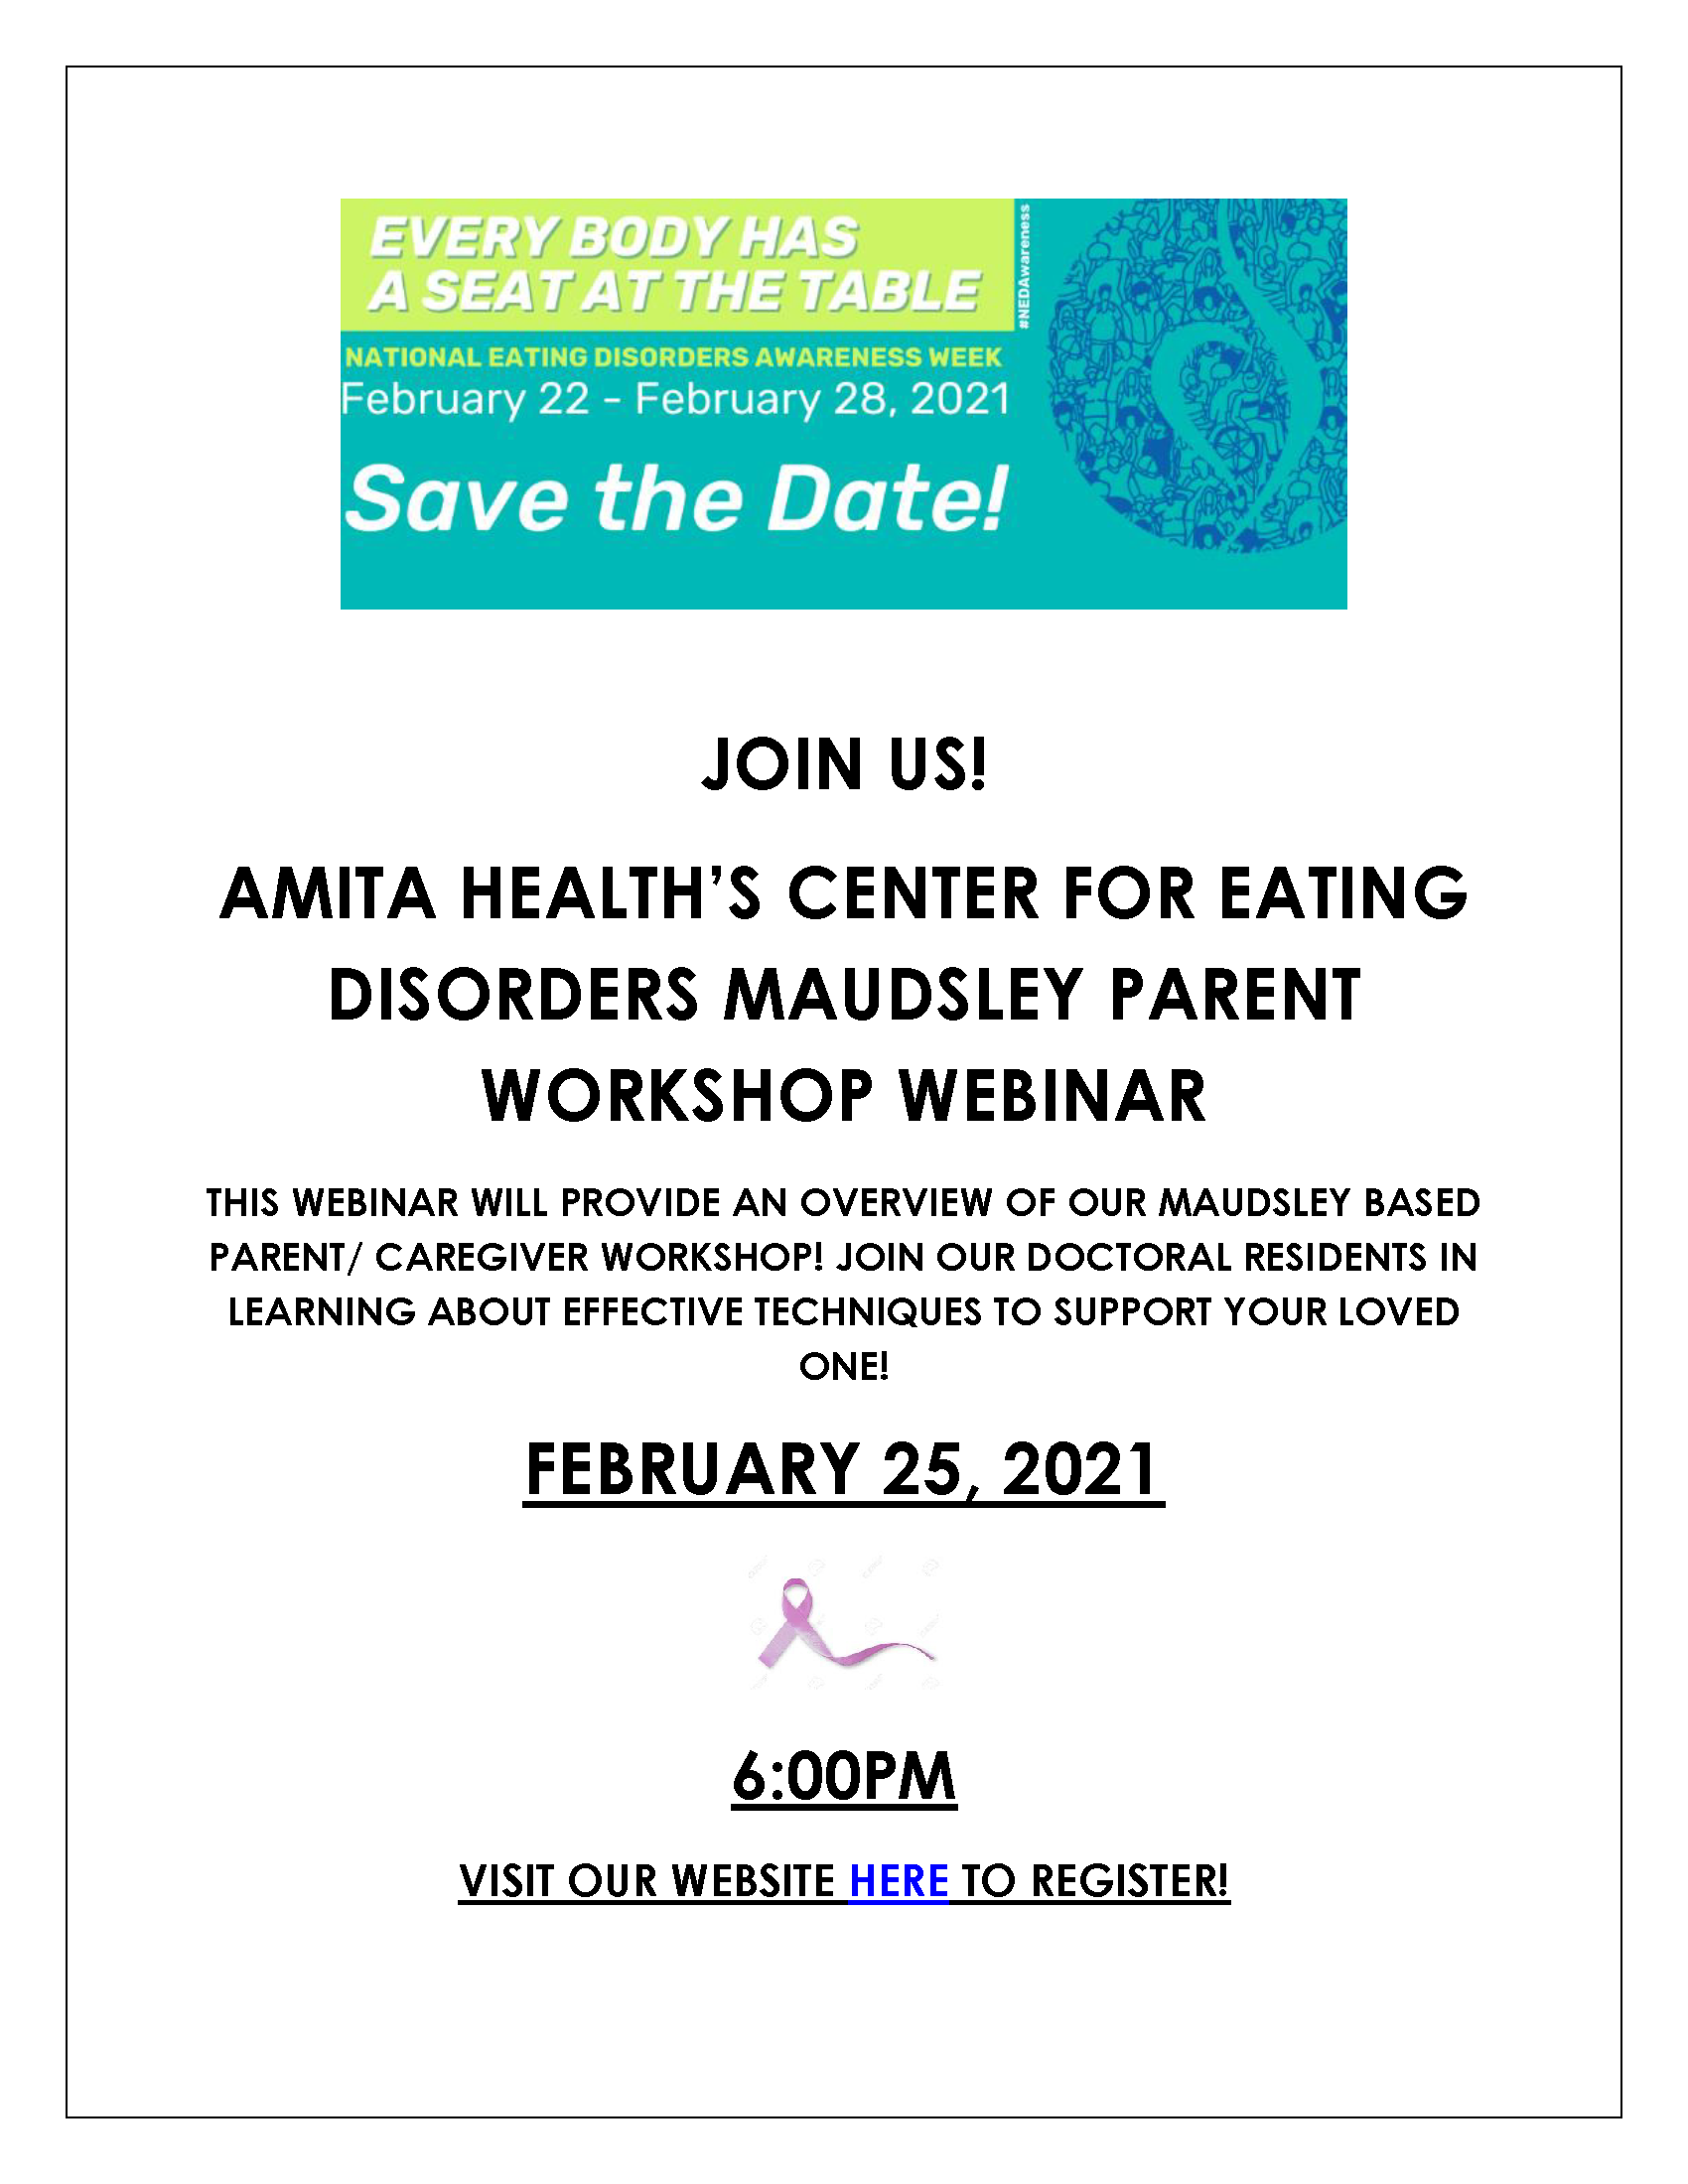 https://www.amitahealth.org/for-healthcare-professionals/continuing-medical-education/behavioral-health/workshops-and-programs